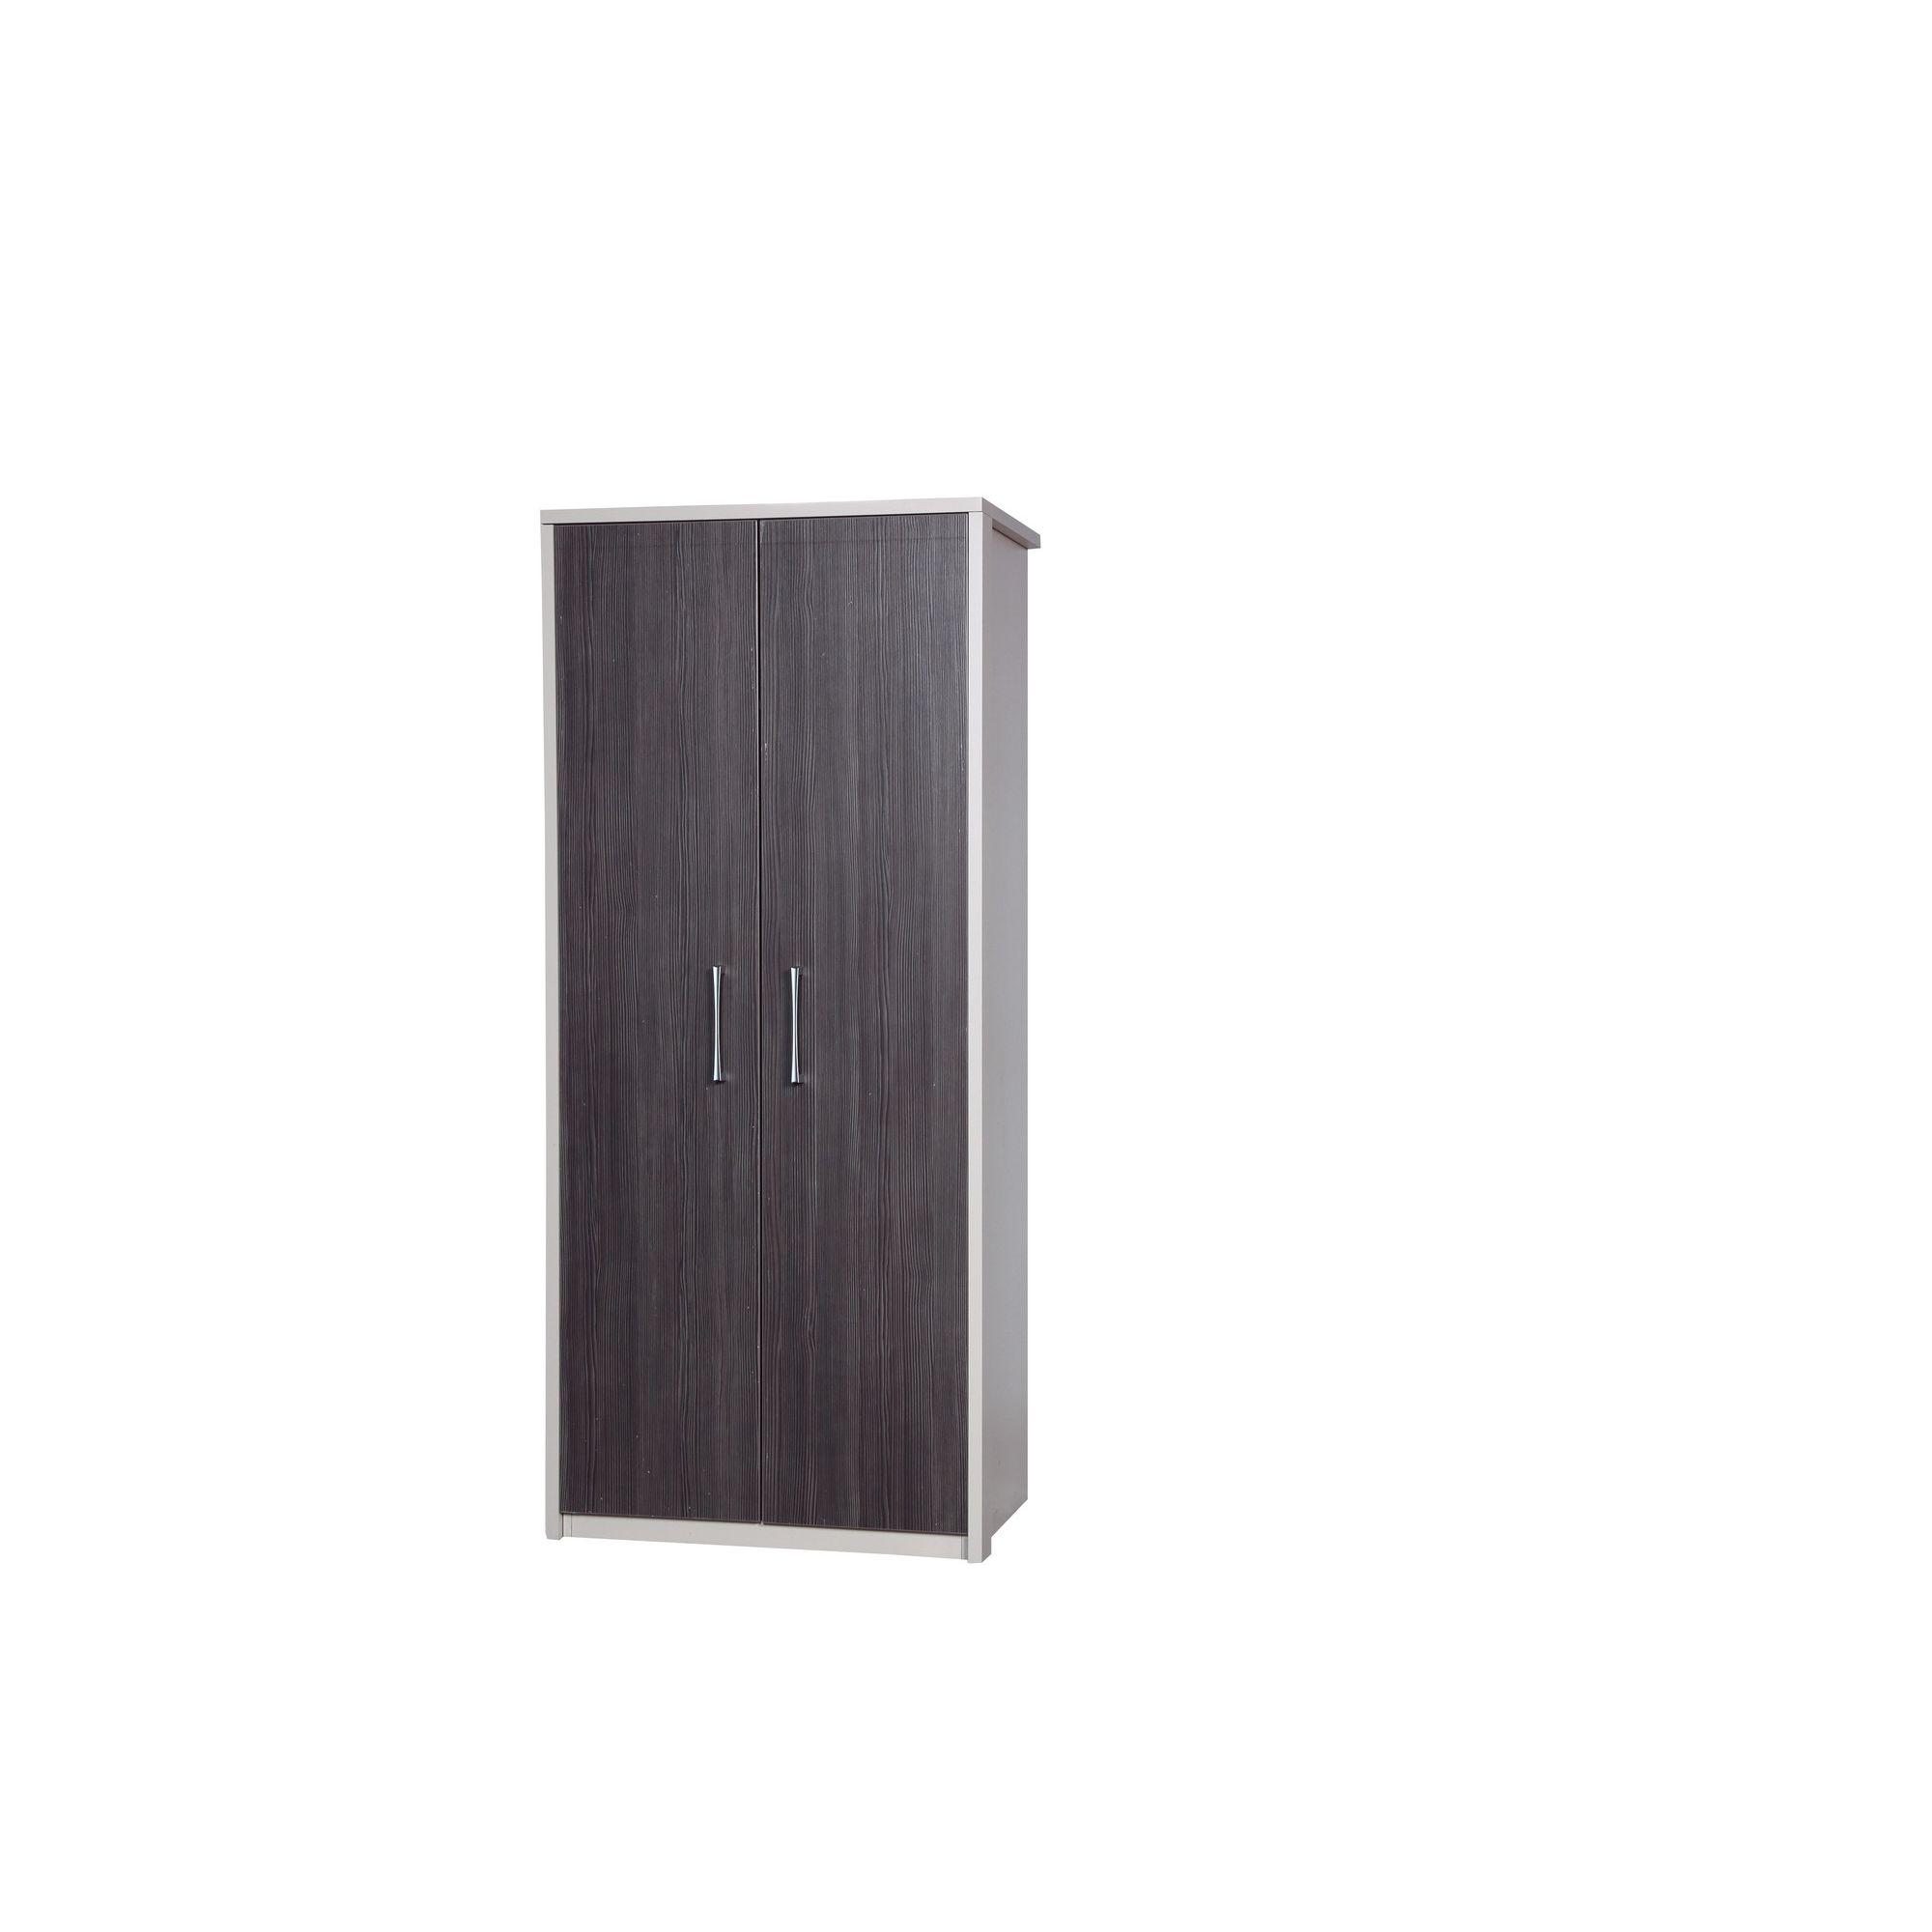 Alto Furniture Avola Double Wardrobe - Cream Carcass With Grey Avola at Tesco Direct